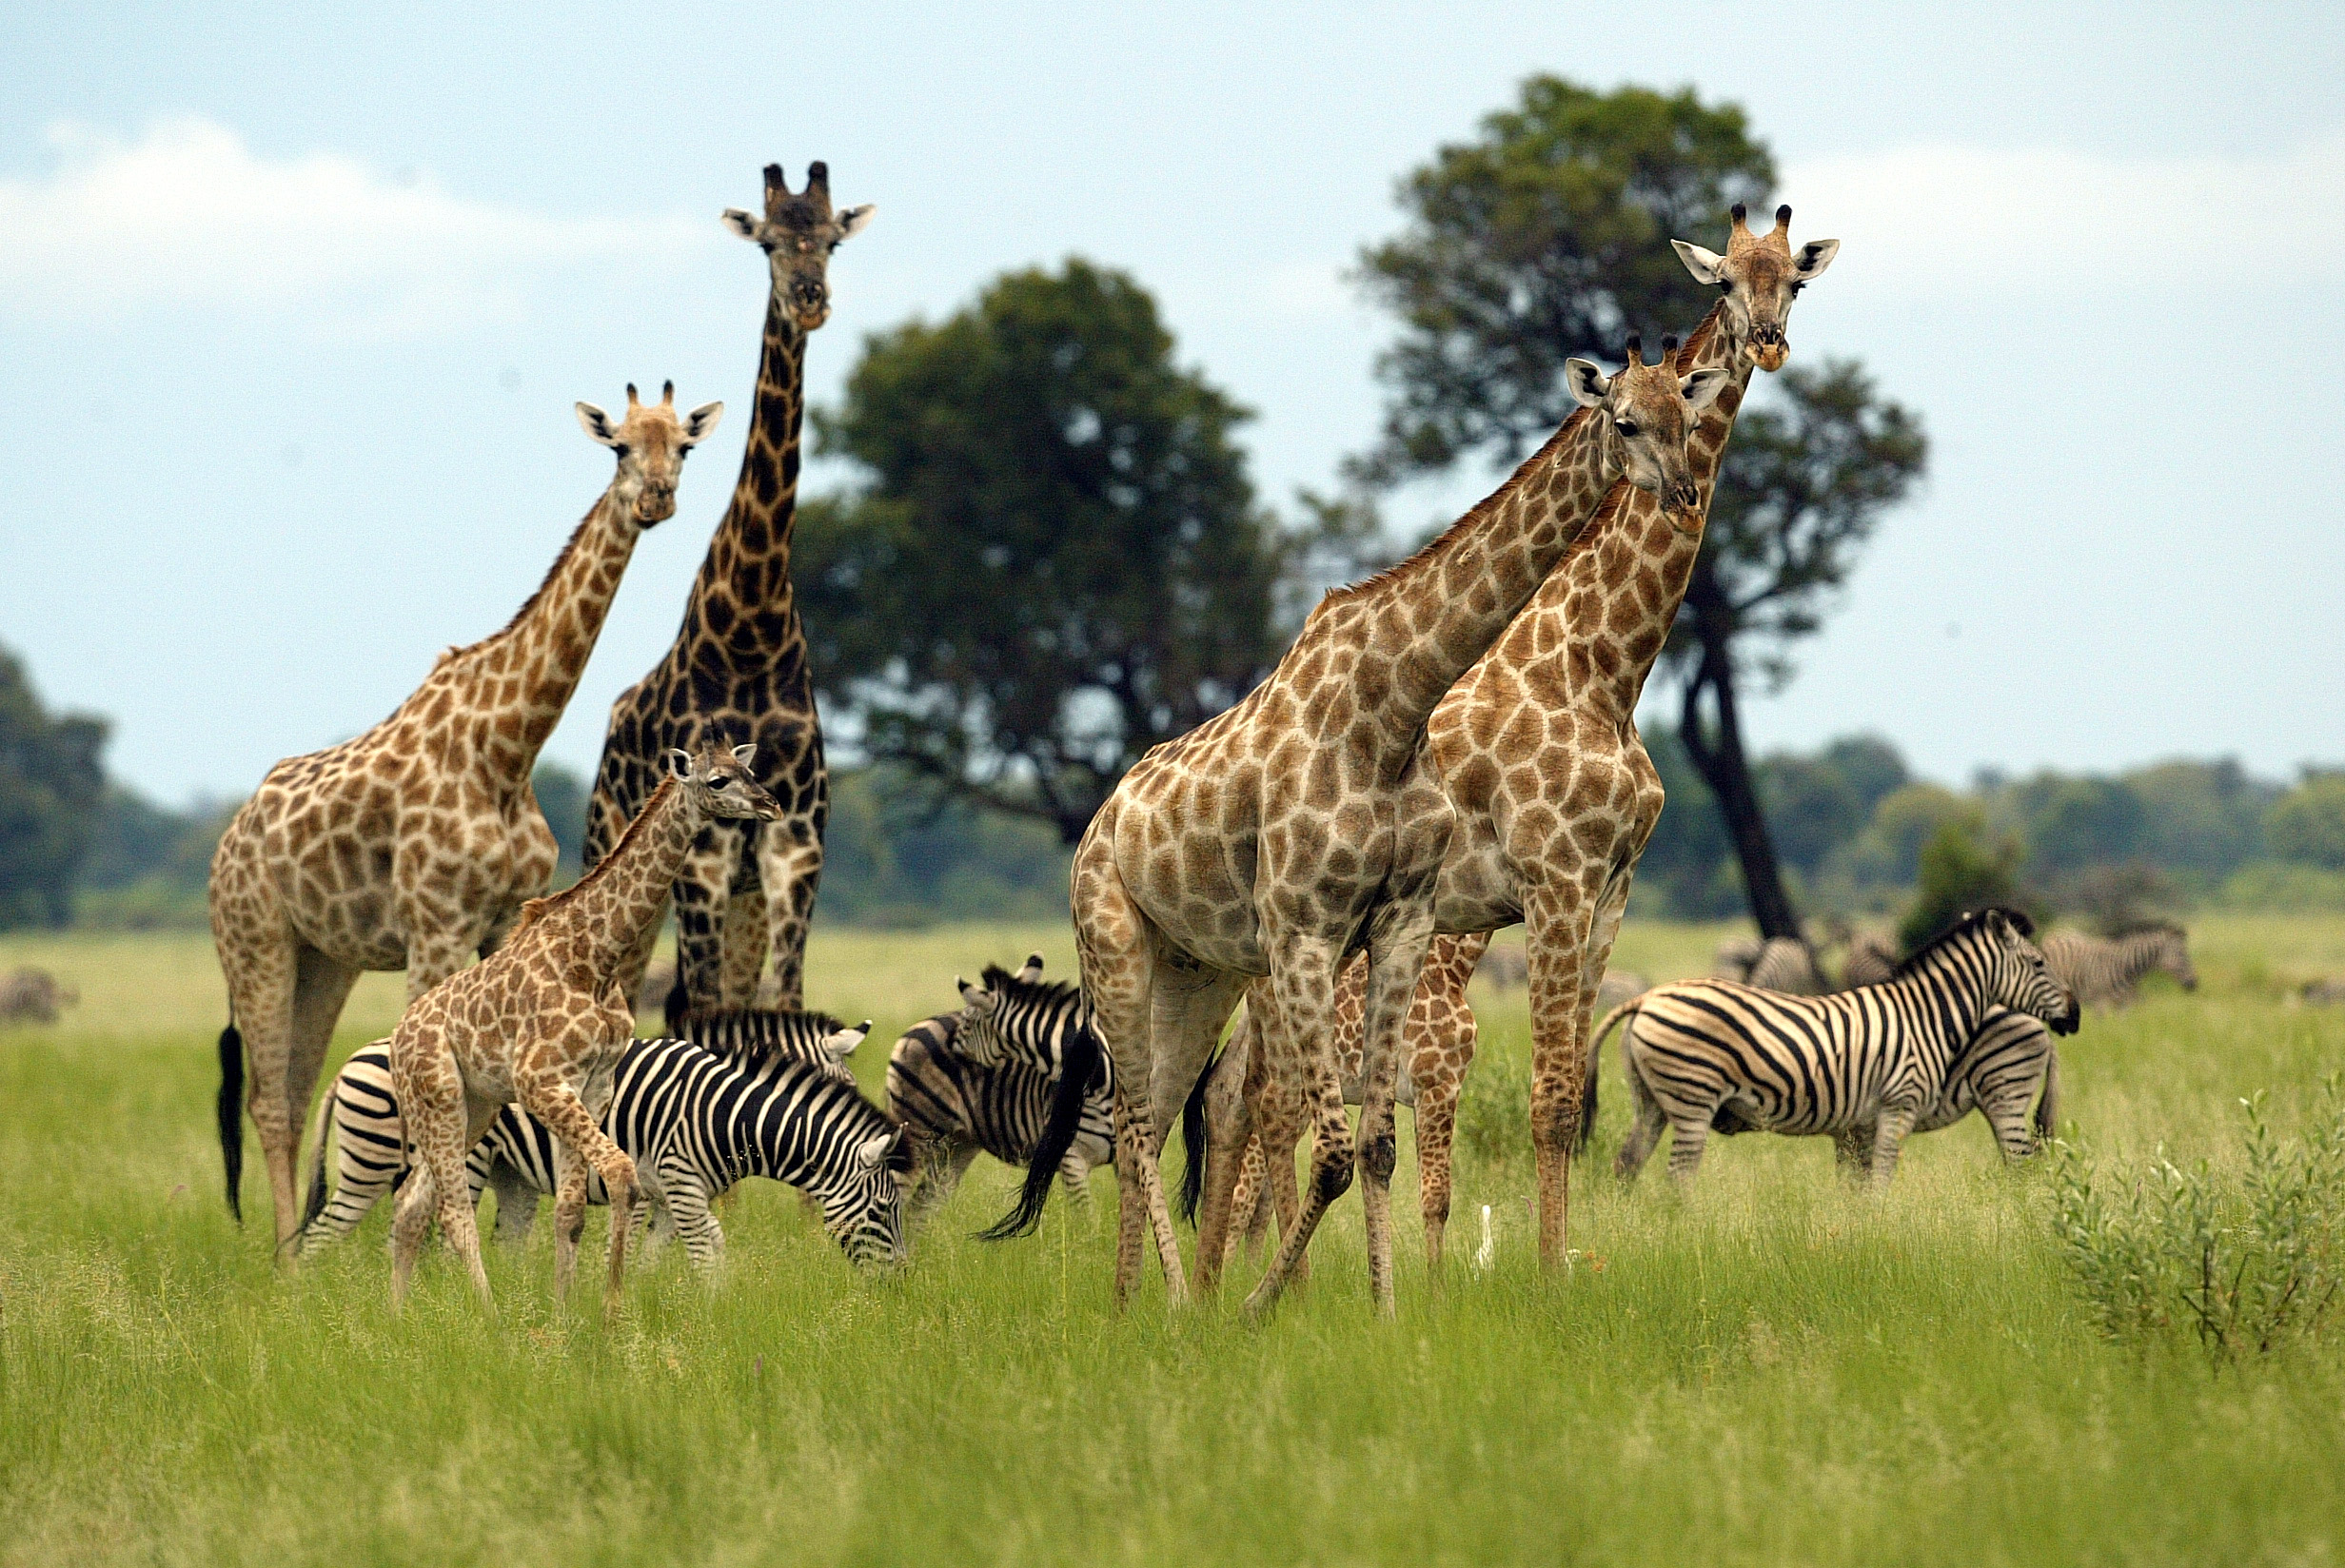 south african tourist arrivals to zimbabwe increase in 2013